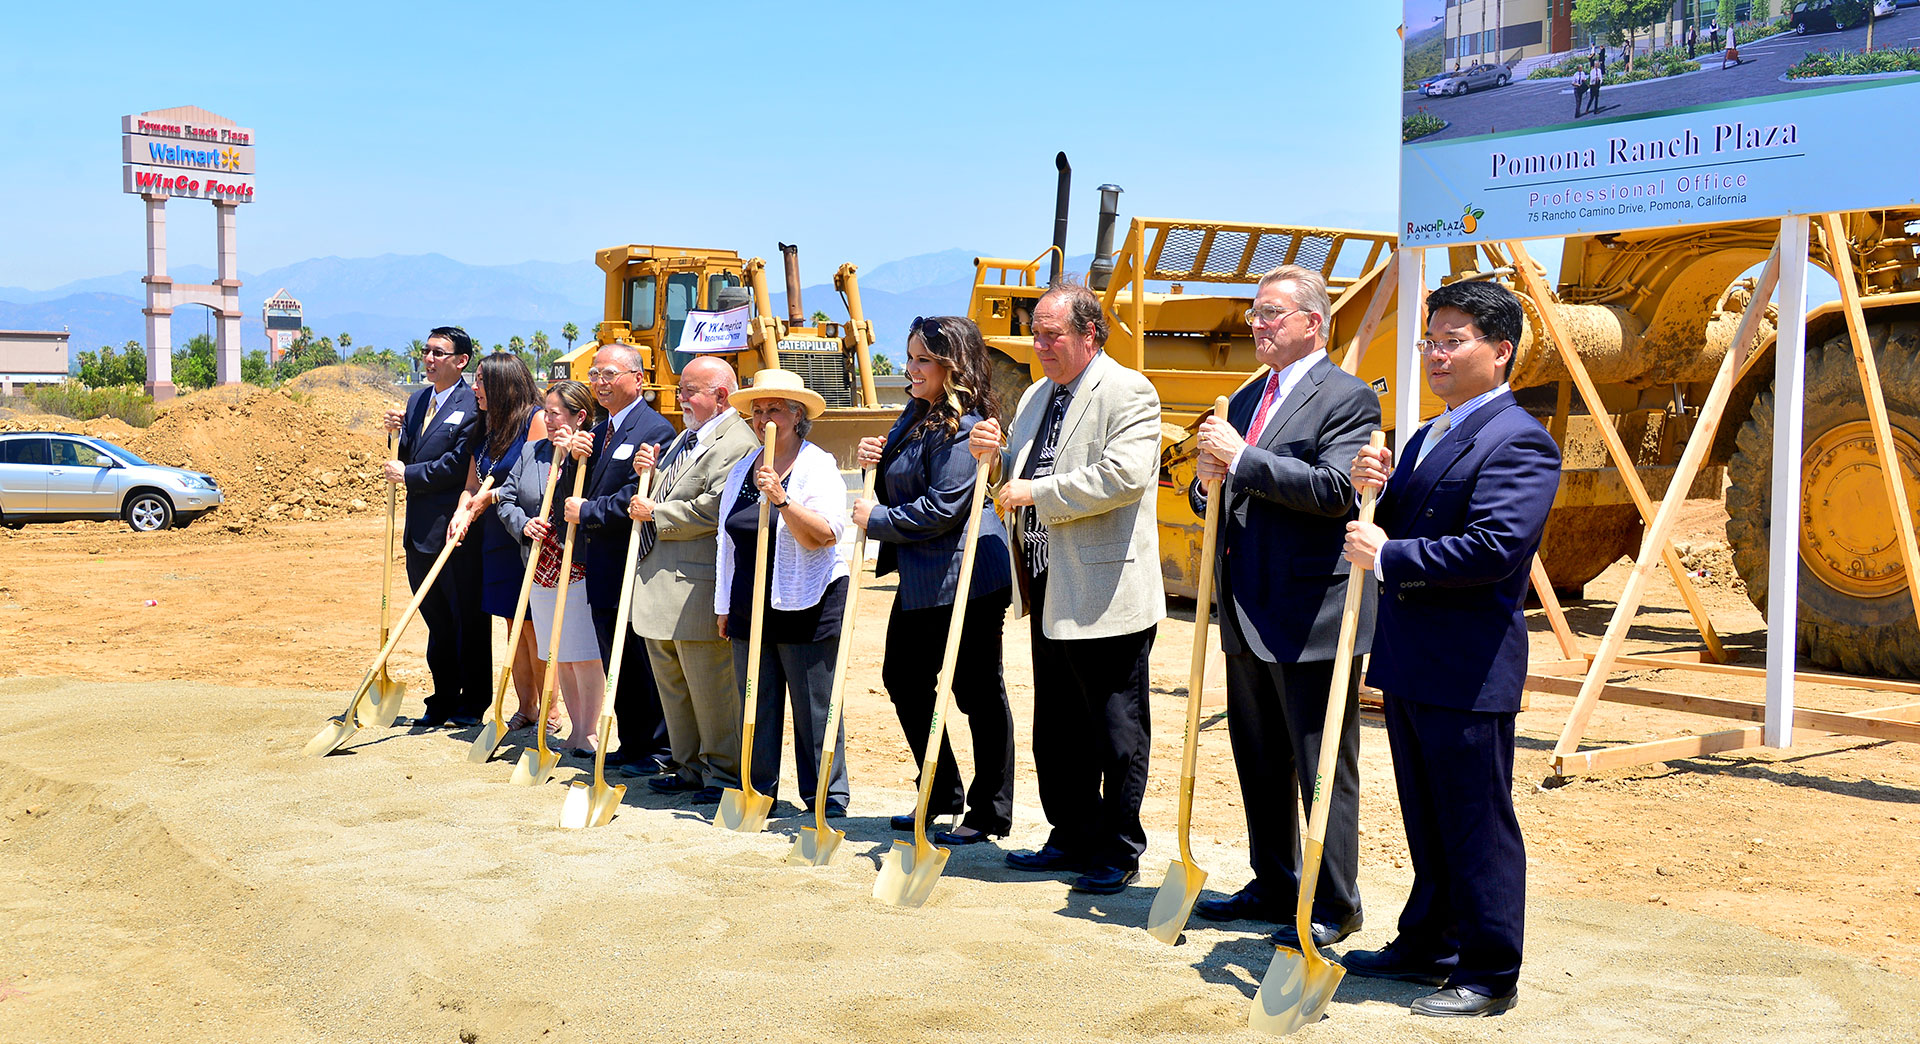 Pomona Ranch Business Center 7 Groundbreaking Ceremony